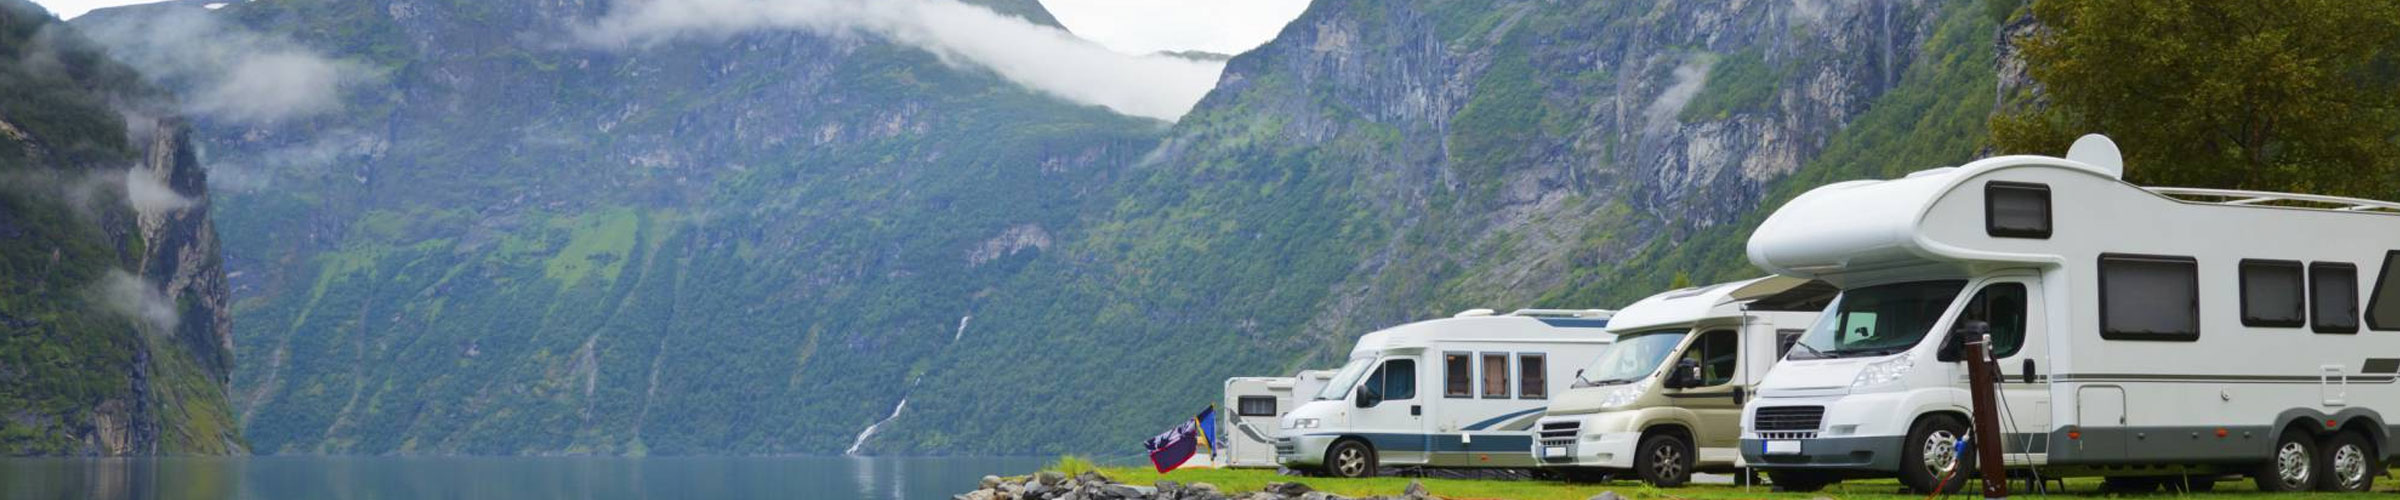 Luxury Providing Motorhome Hire In The UK Since 2001, We Offer Great Value, Allinclusive, Luxury Motorhomes For Hire For Visitors And Locals To The Southampton If You Are The Owner Or A Representative Of This Business Listing, Then You Can Amend,